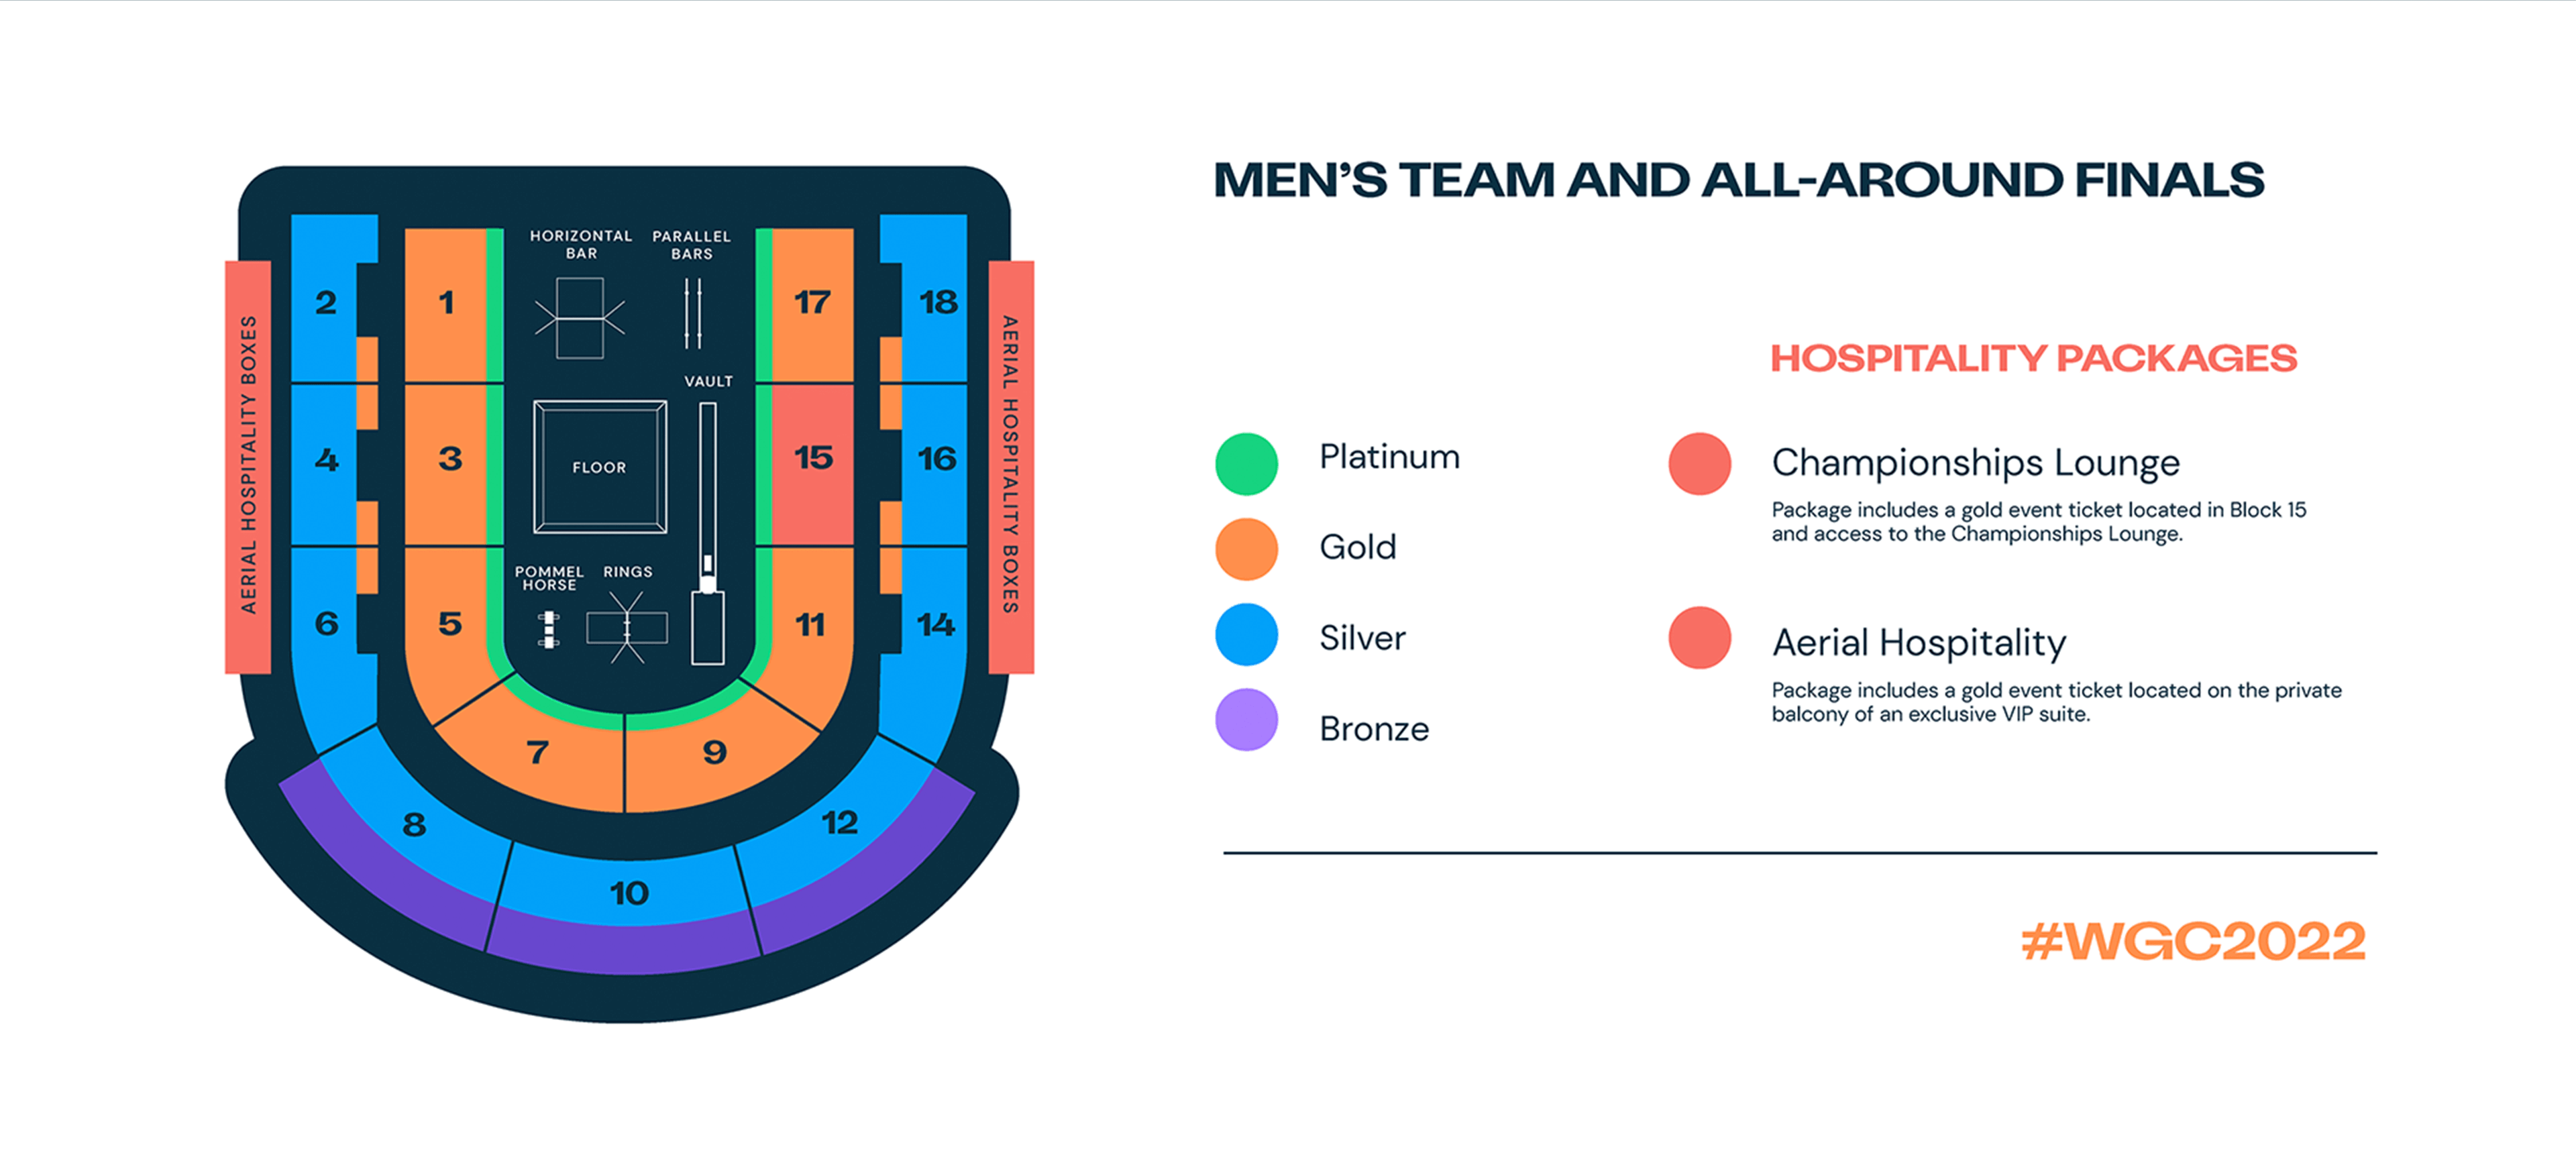 Seat map for Men's team and all-around finals